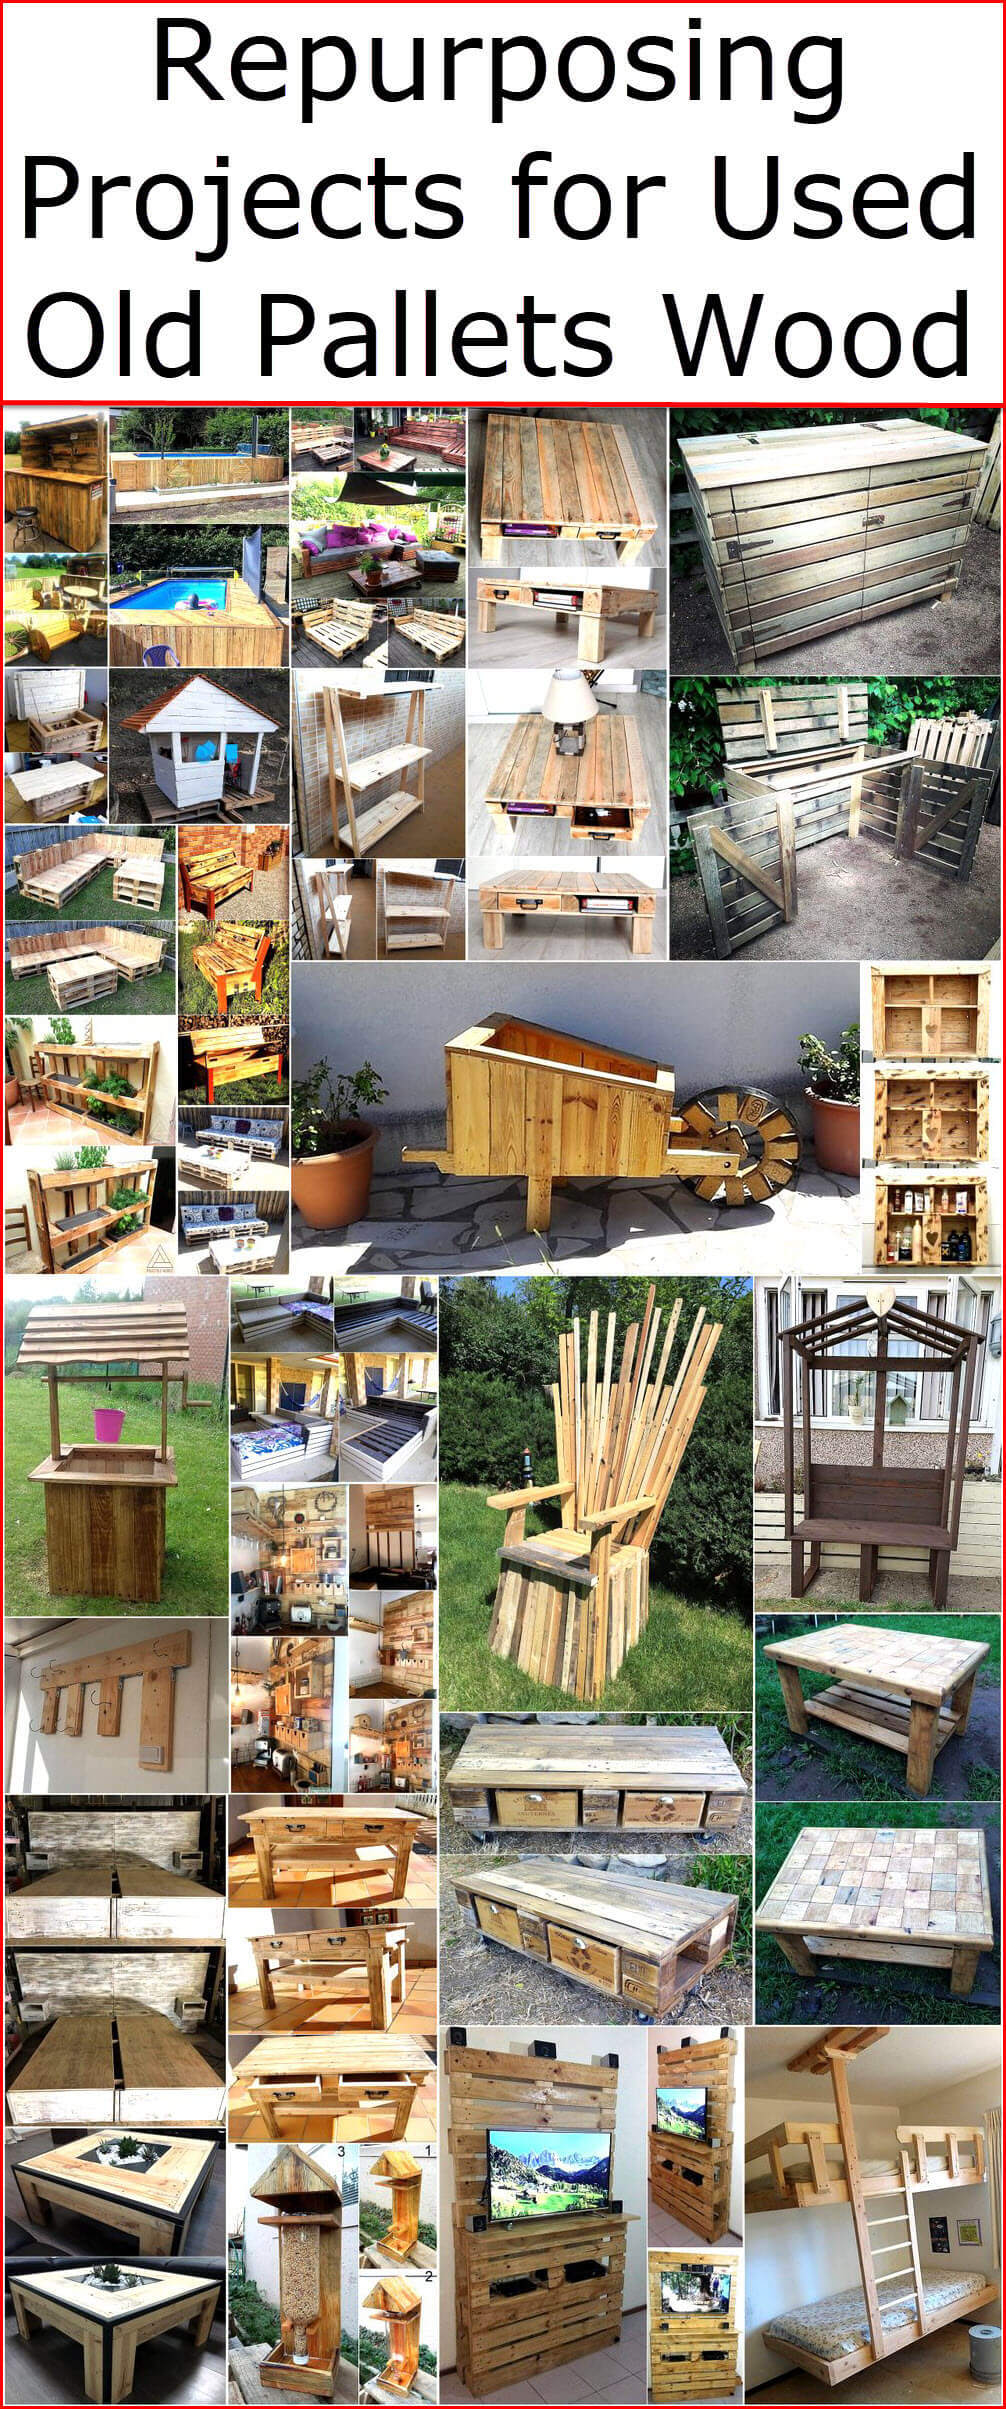 Repurposing Projects for Used Old Pallets Wood